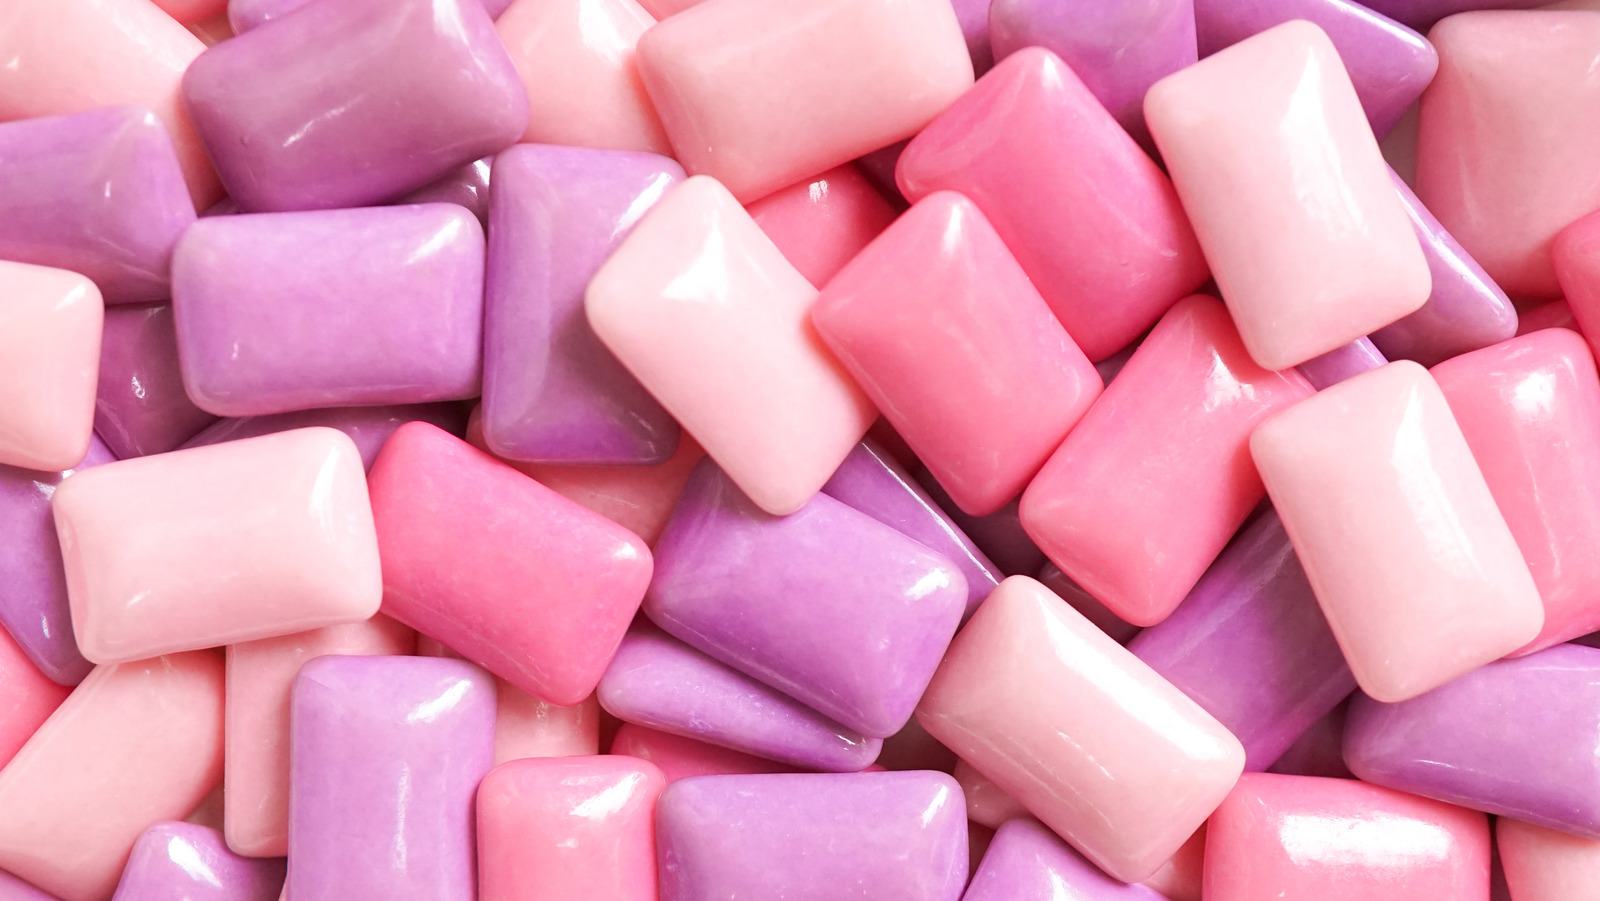 The Original Purpose Of Chewing Gum Might Surprise You